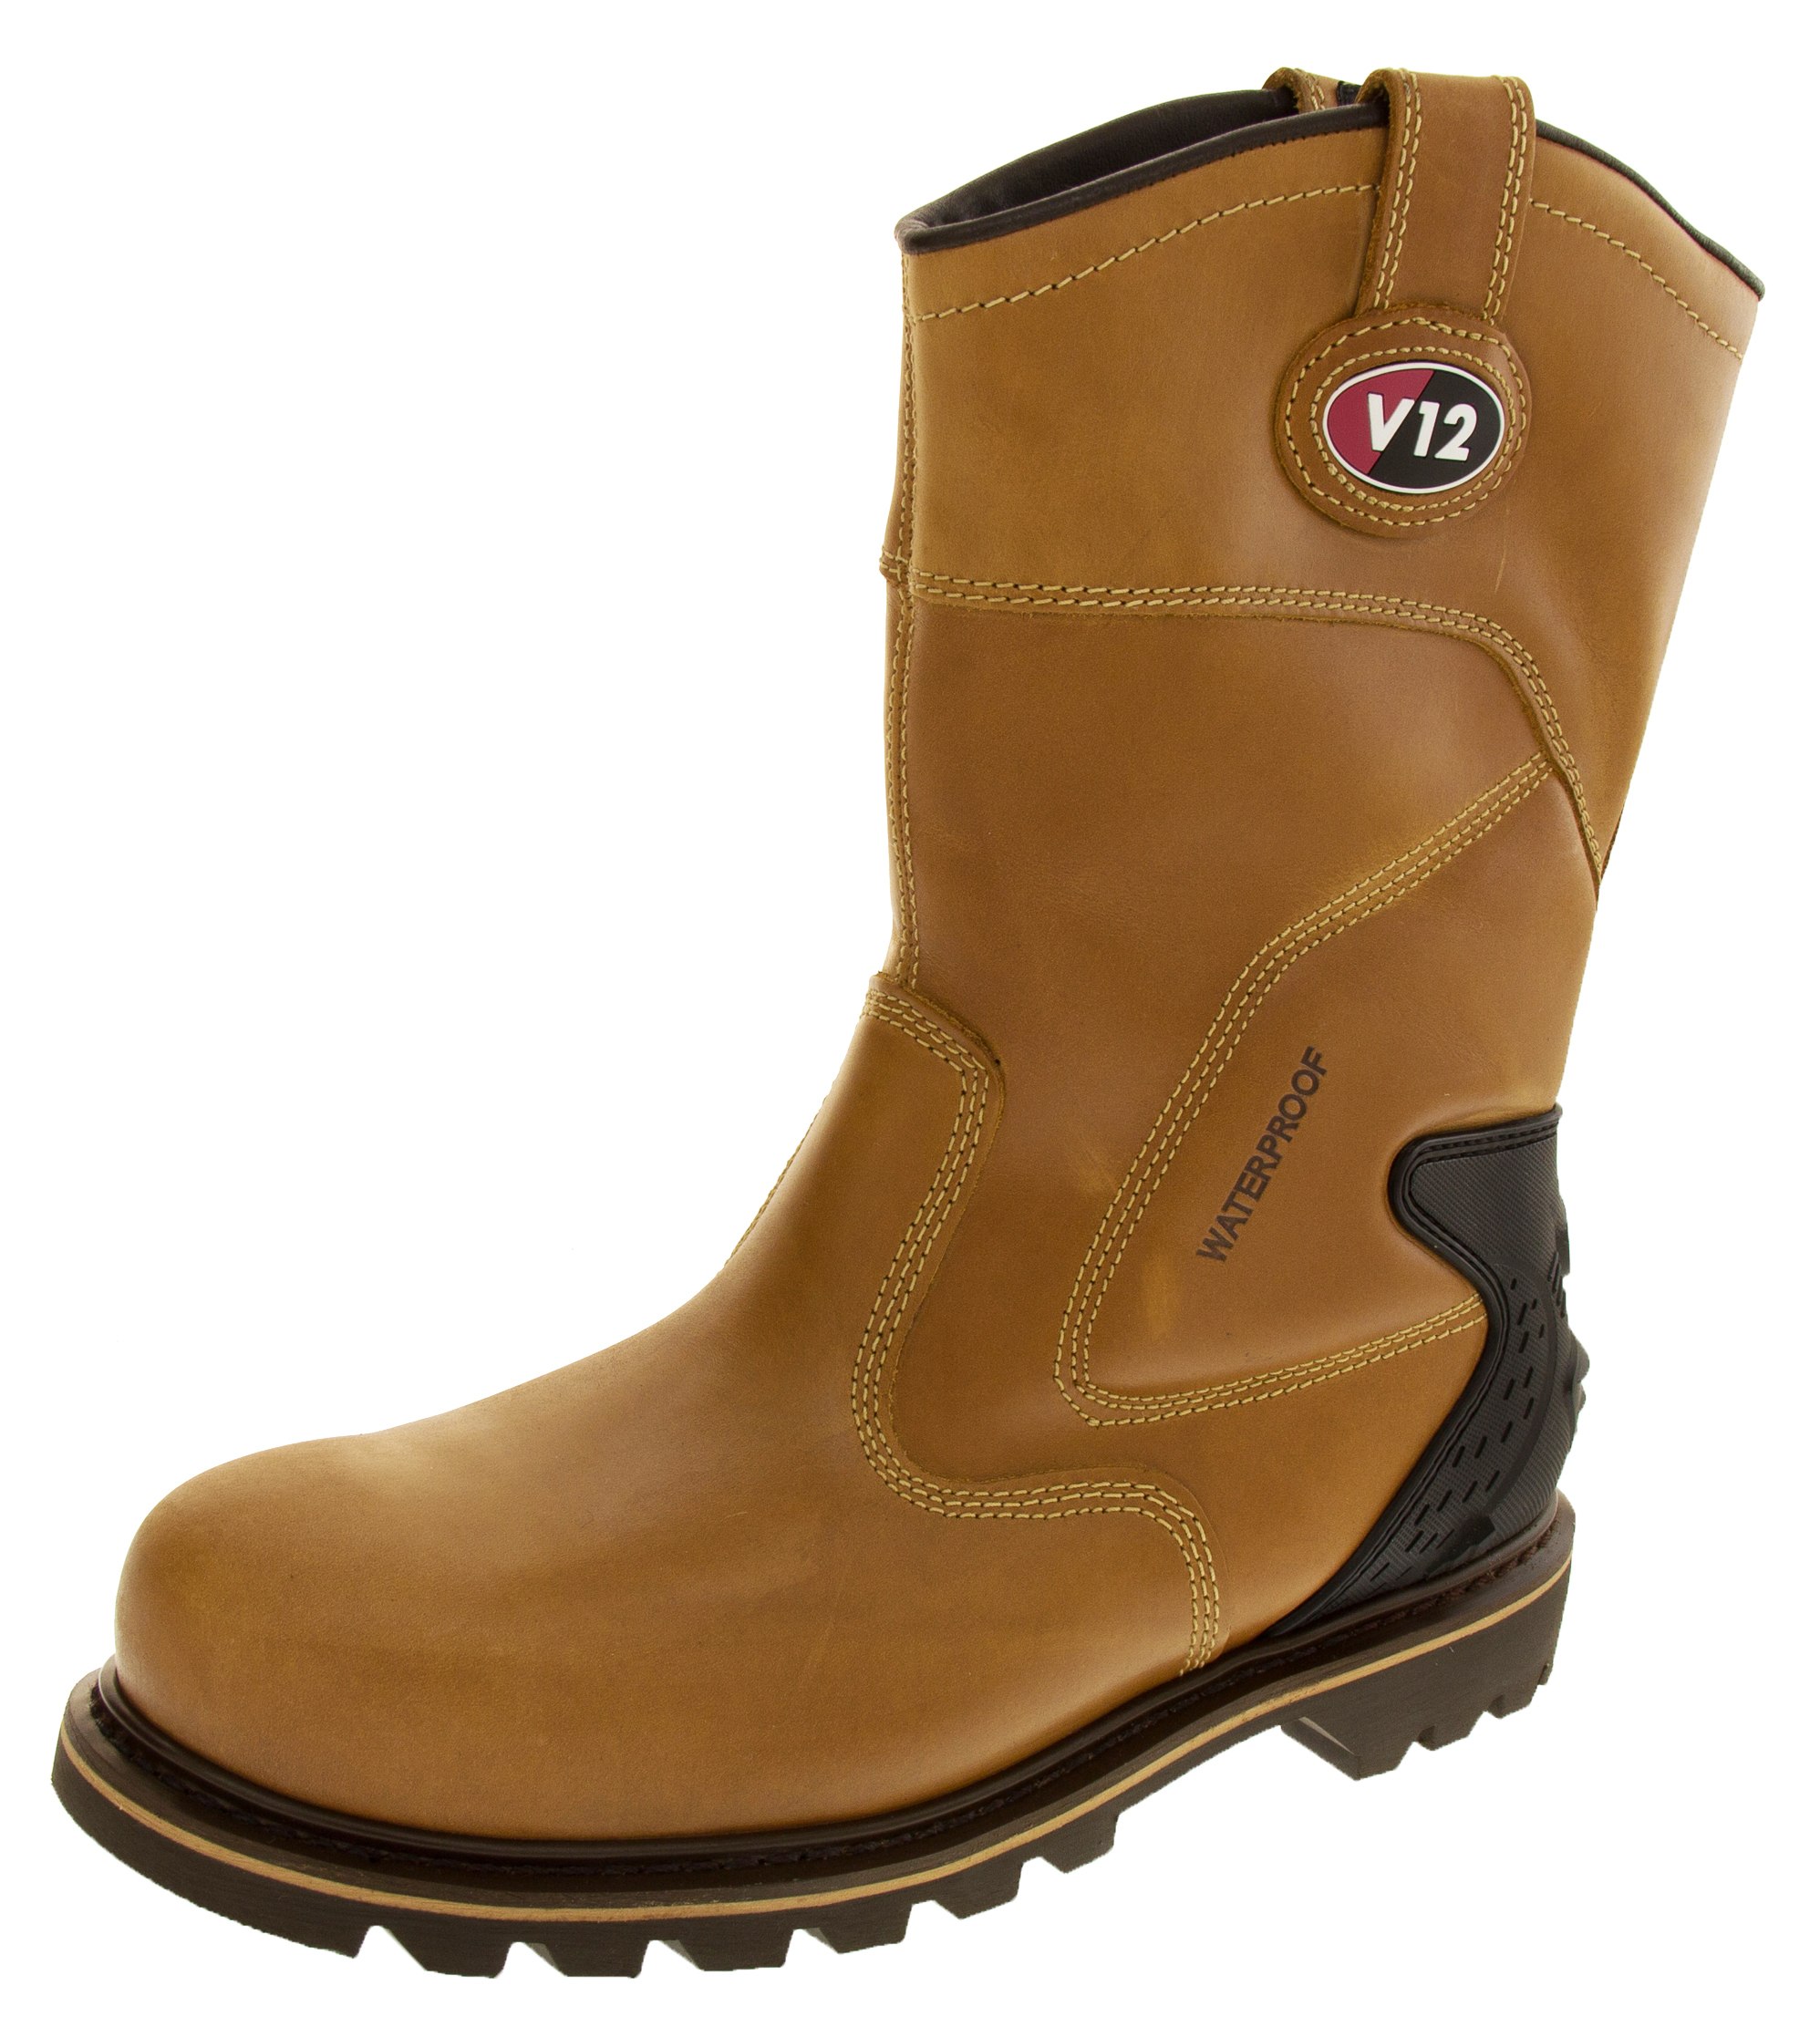 mens v12 waterproof rigger boots leather cowboy work boot